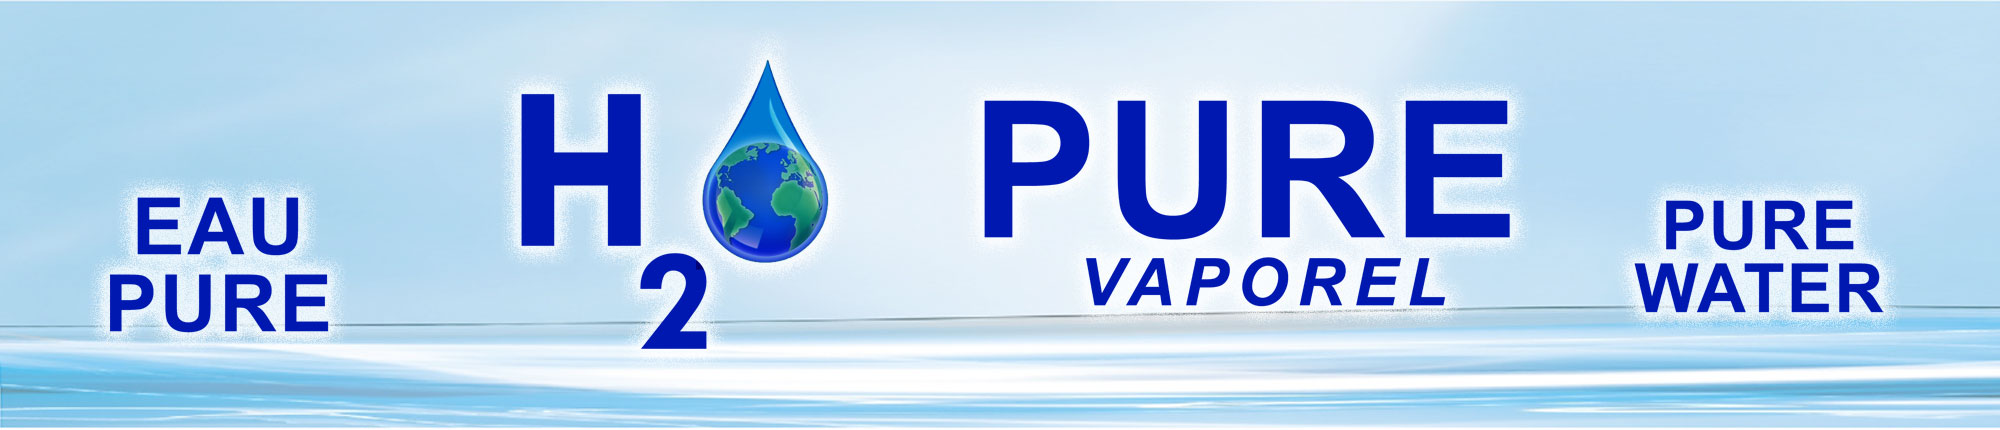 Vaporel H2o Pure Header Banner